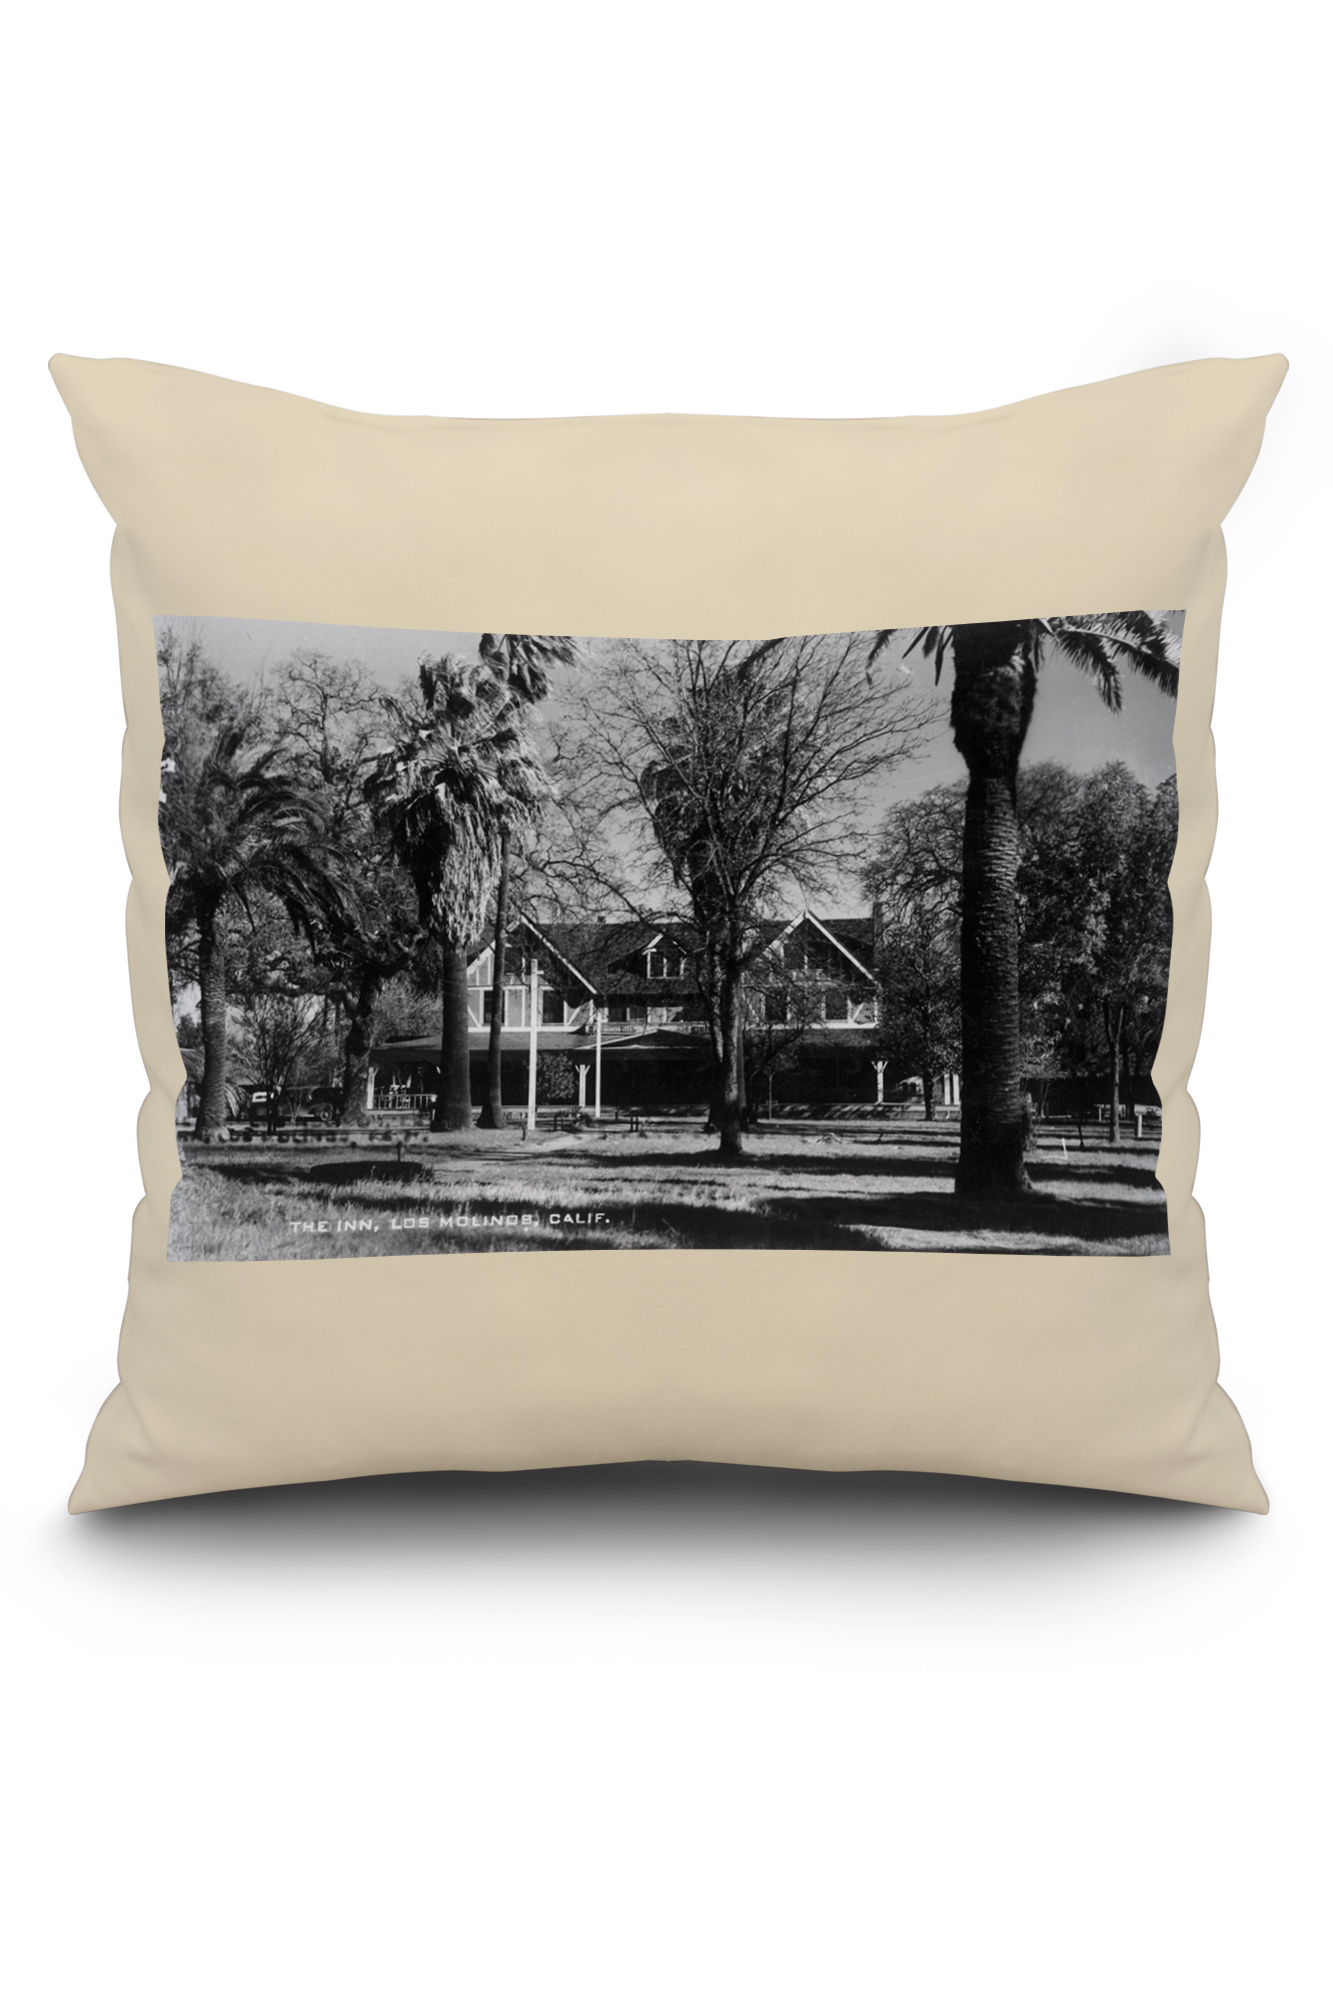 Los Molinos, California   Exterior View Of Los Molinos Inn (20x20 Spun  Polyester Pillow, White Border)